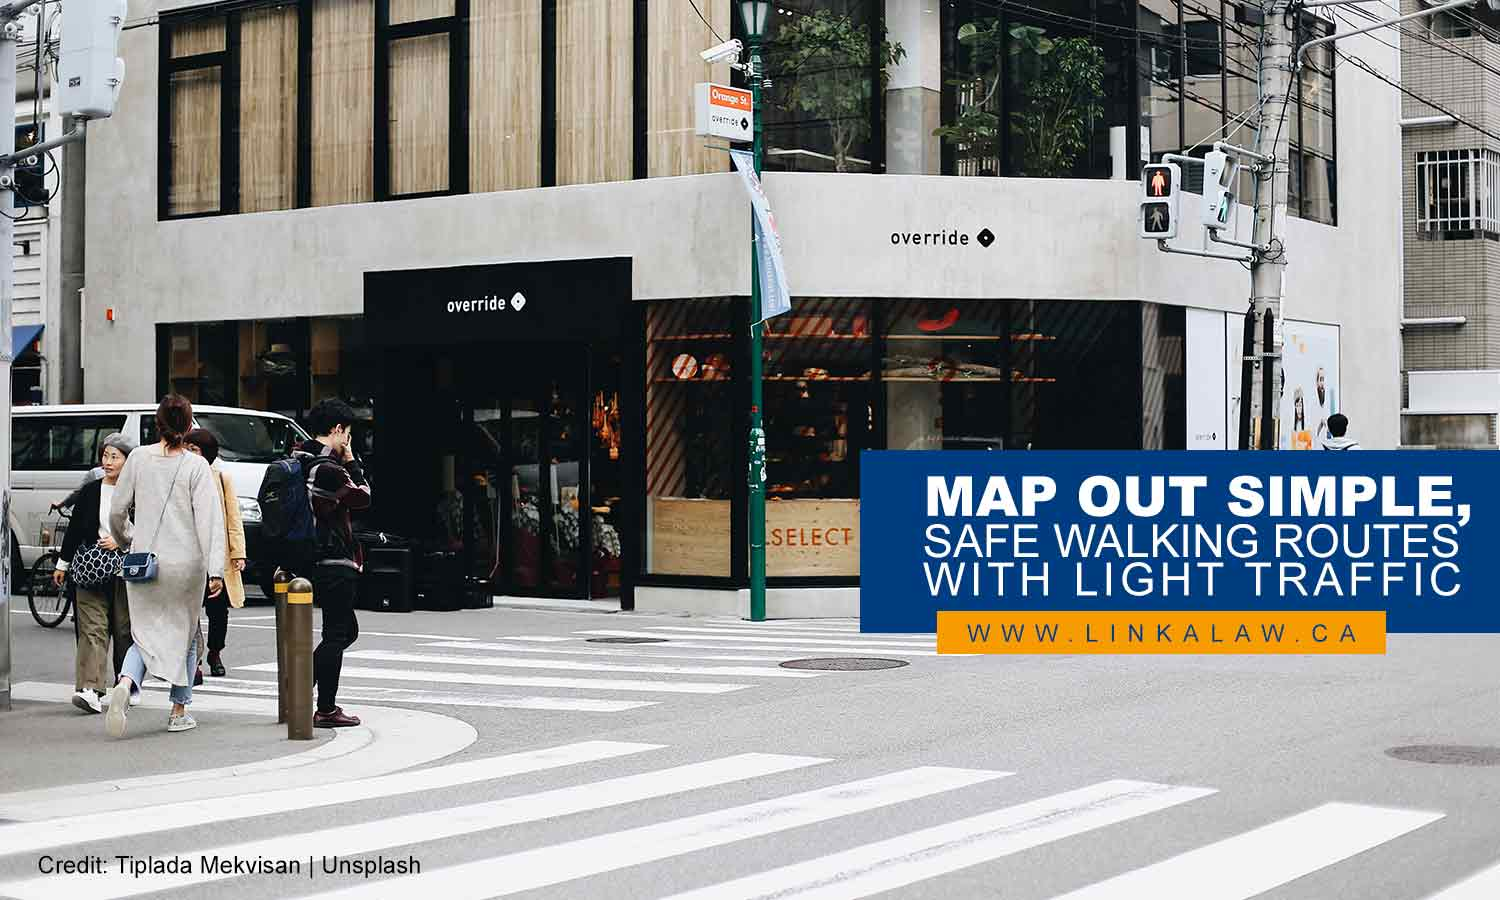 Map out simple, safe walking routes with light traffic